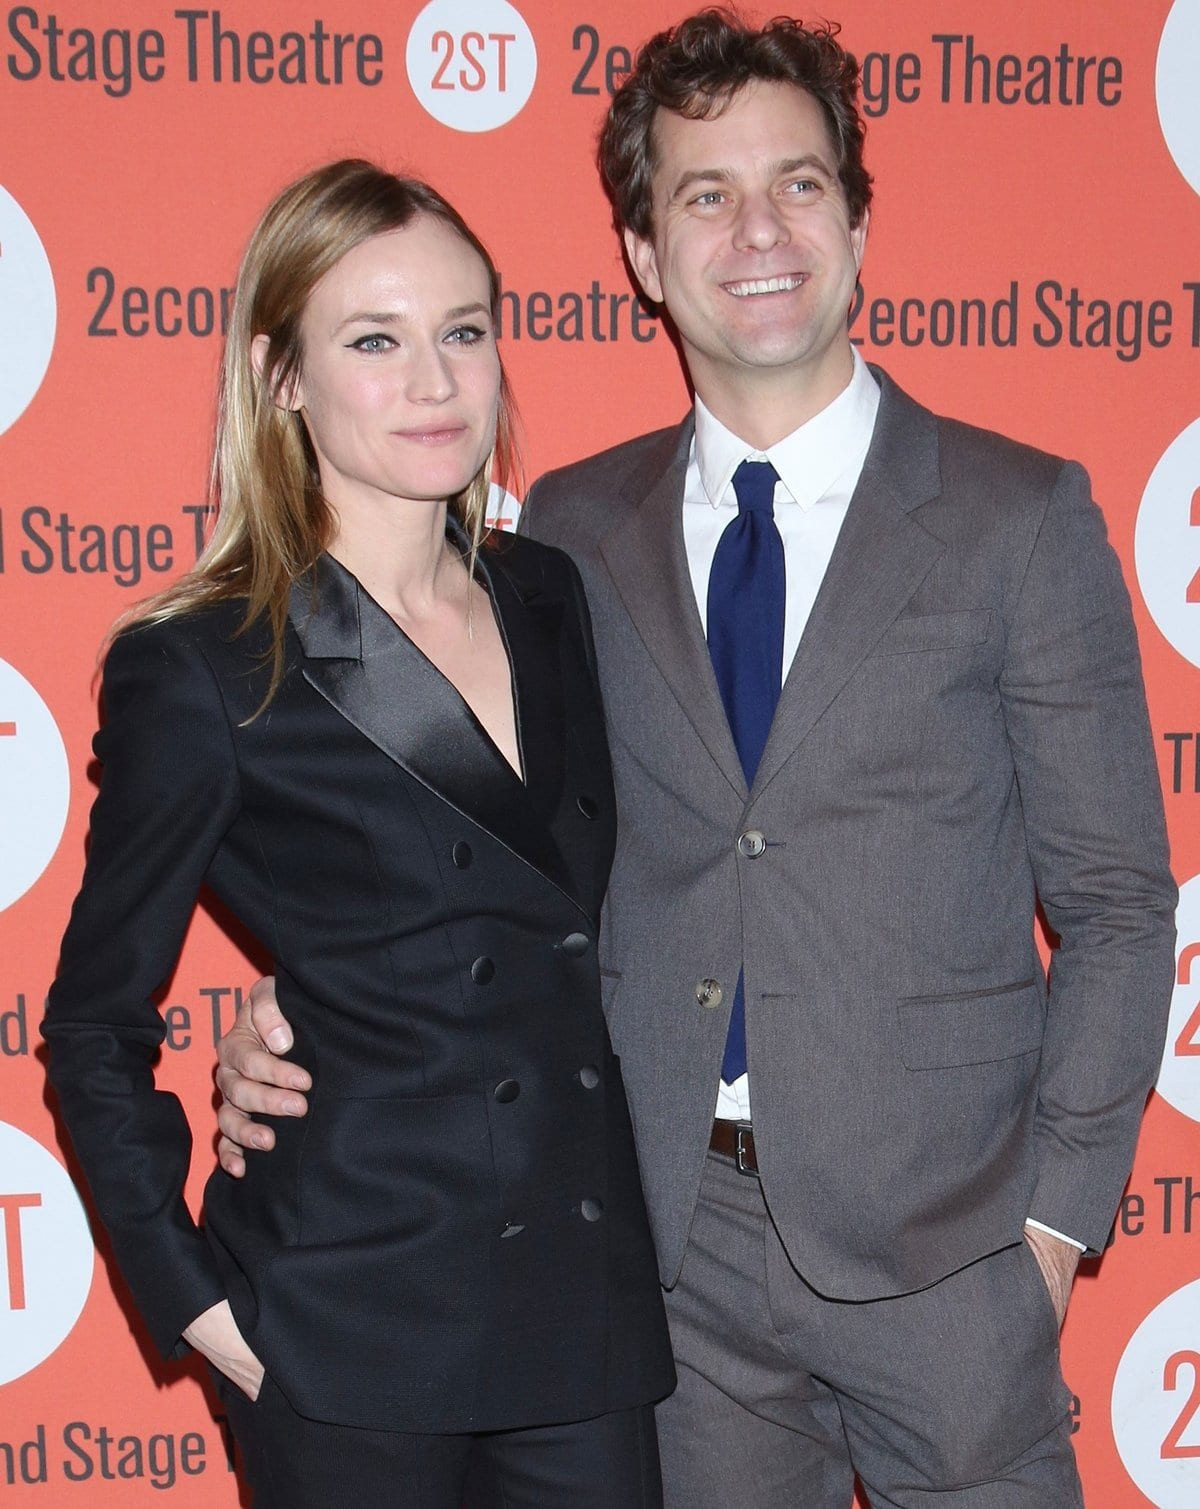 Joshua Jackson and Diane Kruger dated for 10 years between 2006 and 2016